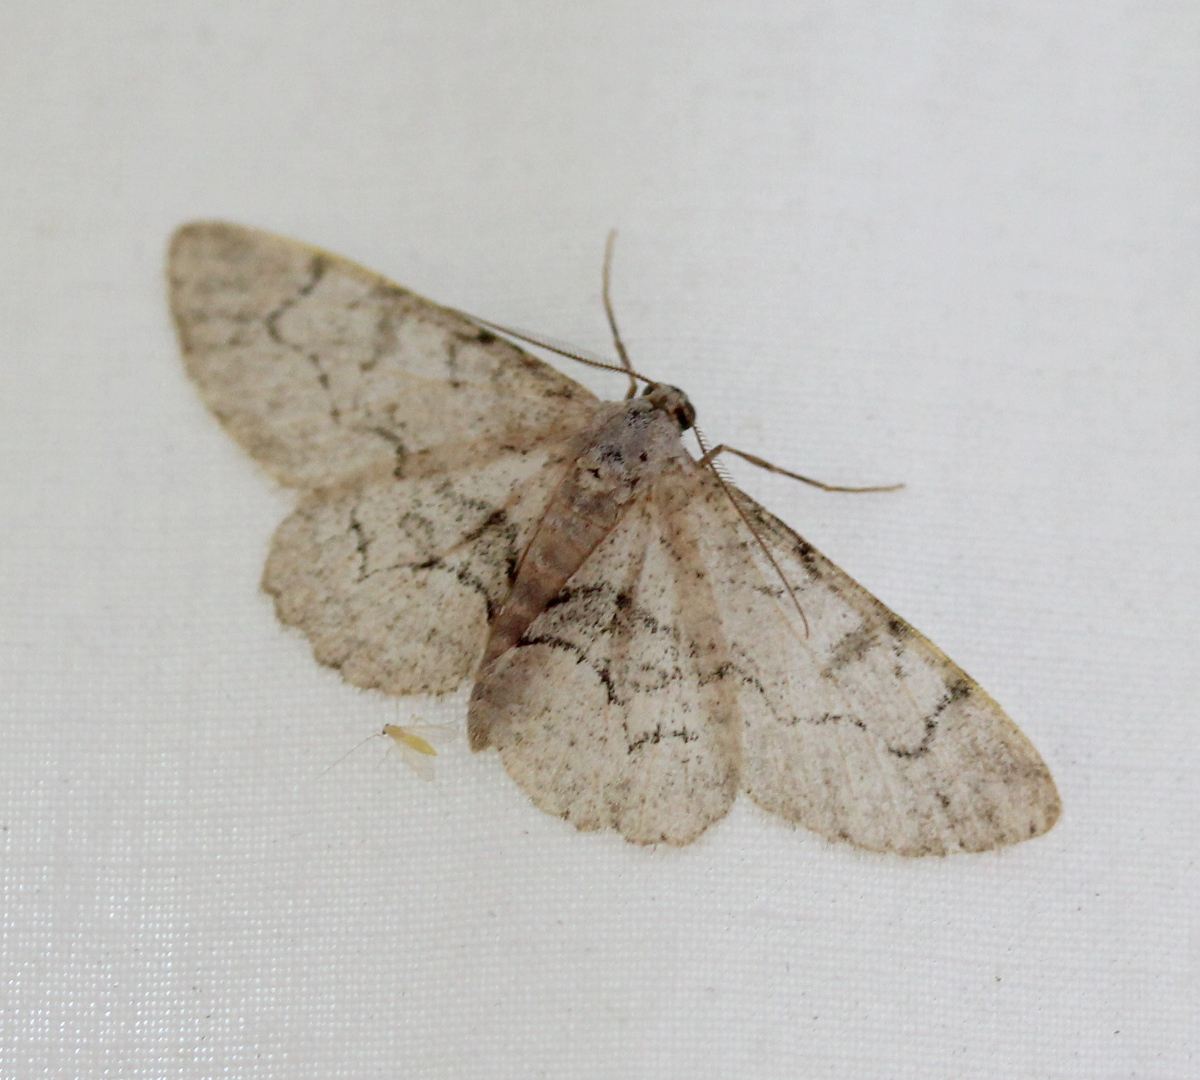 Pale grey moth on white sheet backdrop